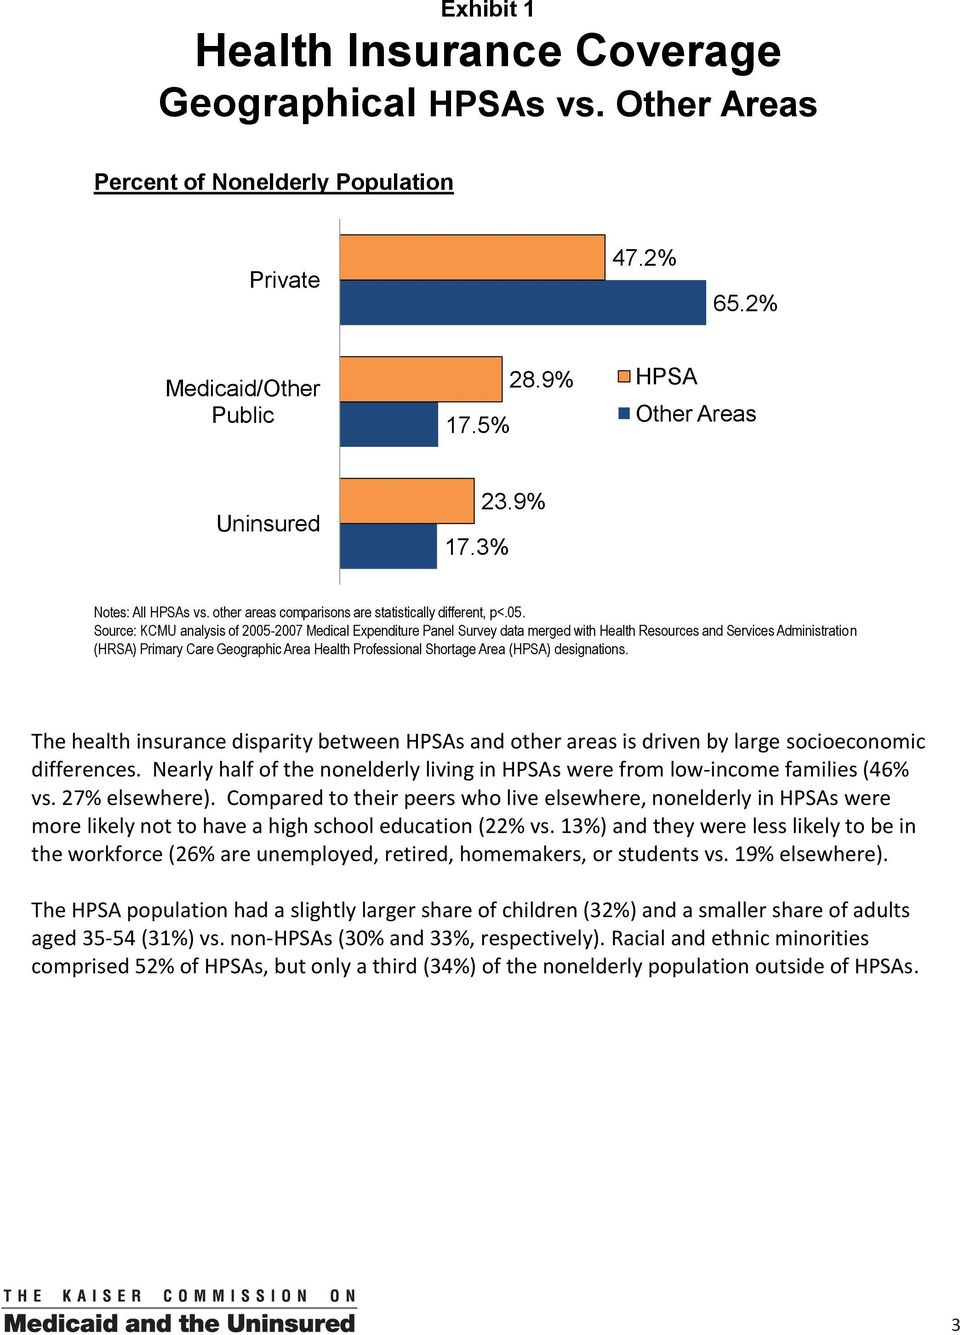 Source: KCMU analysis of 2005-2007 Medical Expenditure Panel Survey data merged with Health Resources and Services Administration (HRSA) Primary Care Geographic Area Health Professional Shortage Area